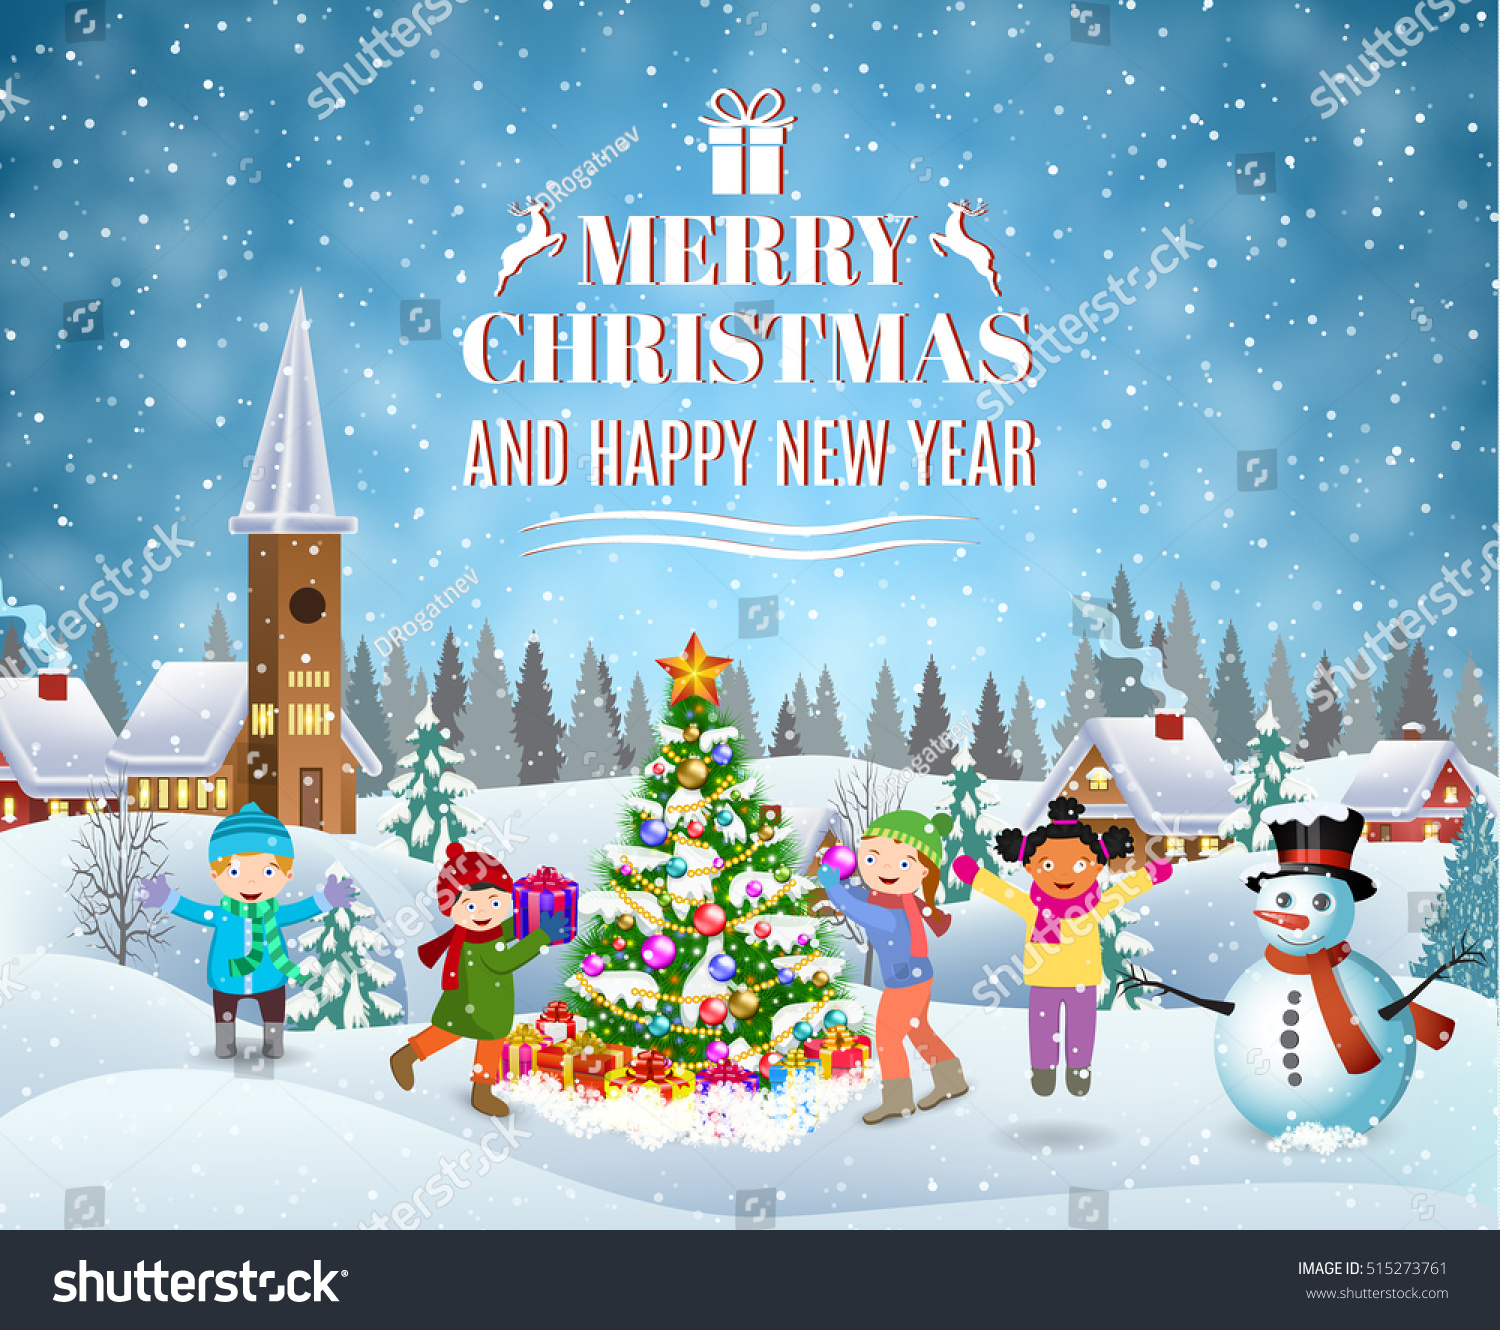 Happy New Year Merry Christmas Greeting Stock Vector 2018